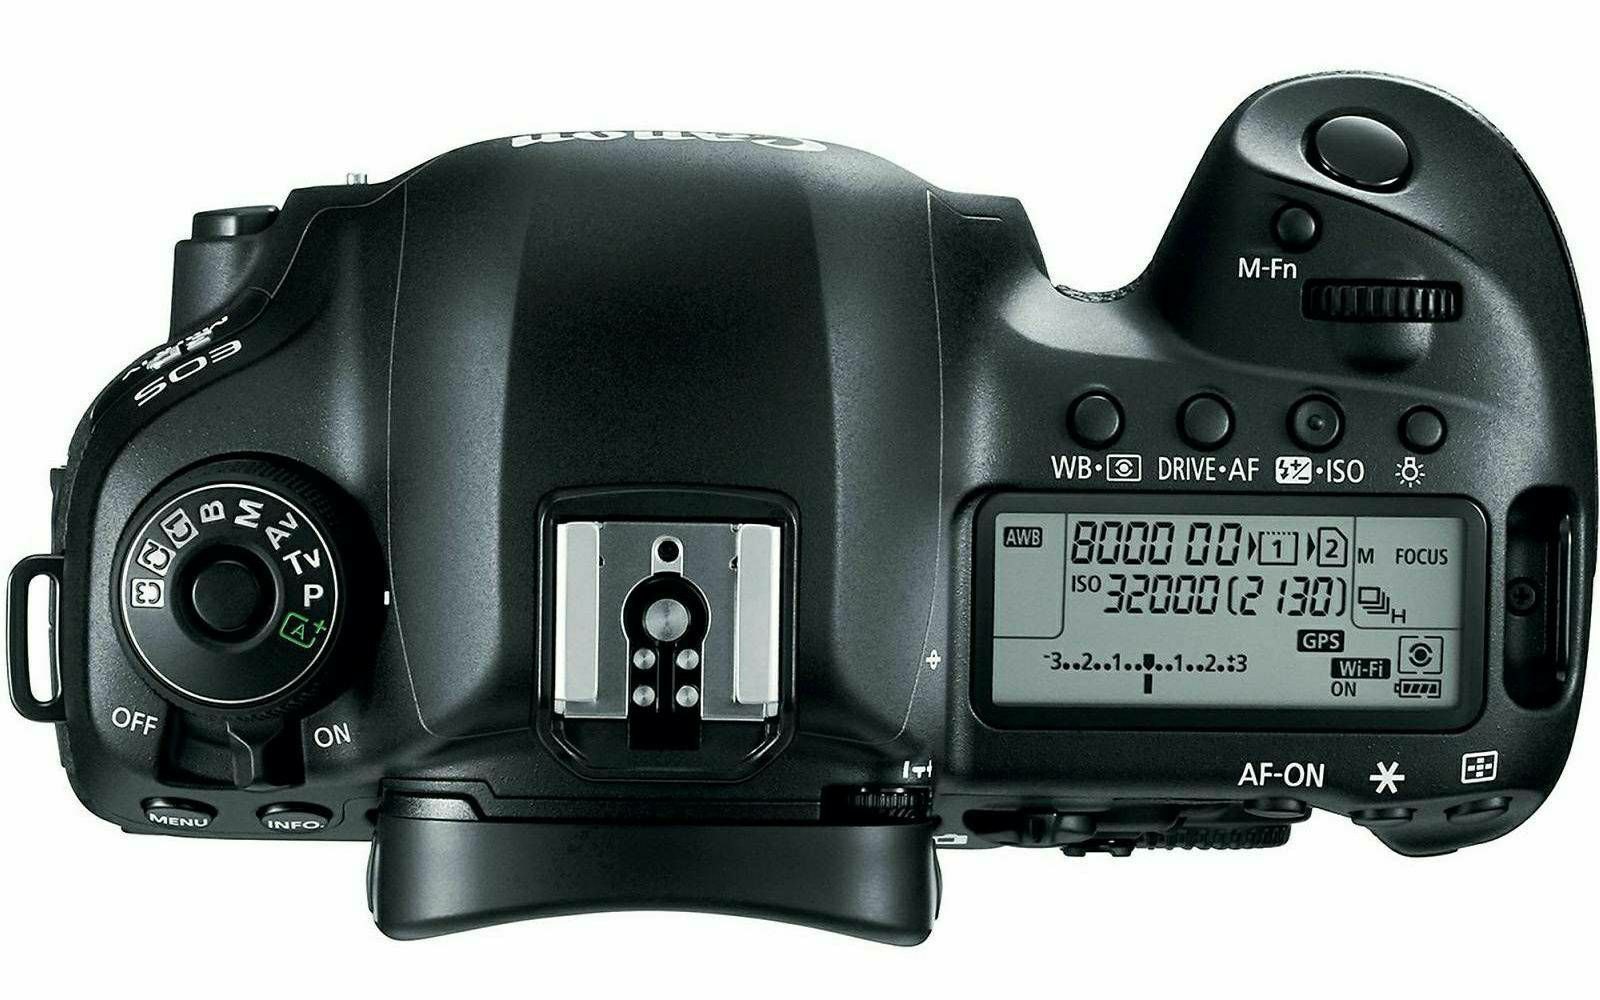 DOWNLOAD DRIVERS: CANON EOS 5D